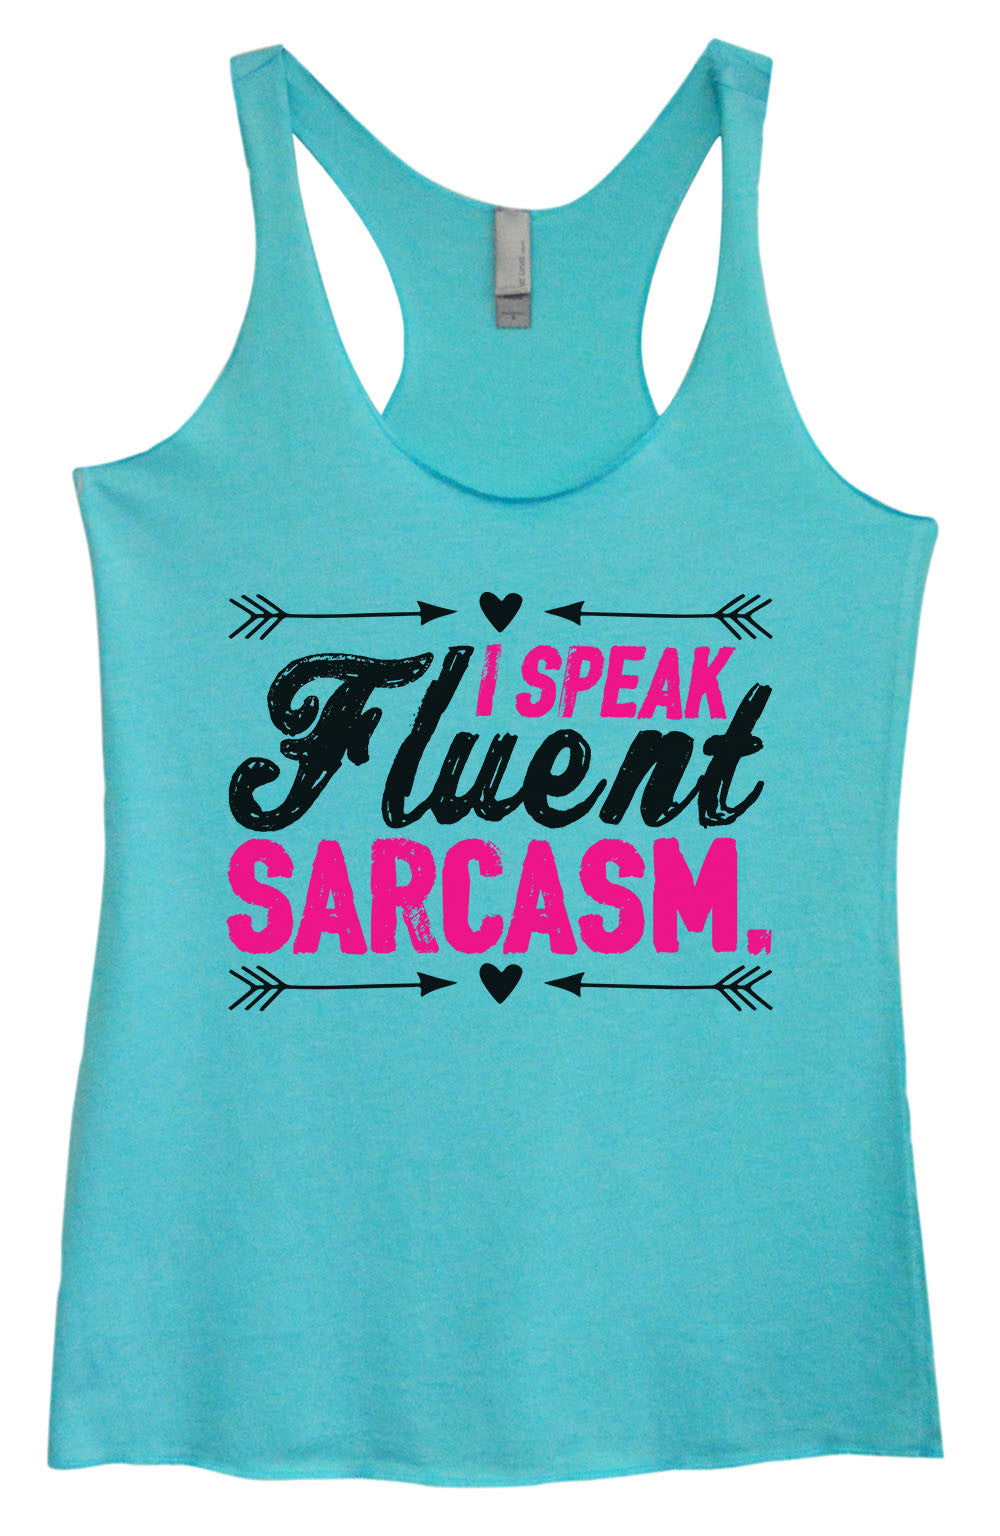 Womens Fashion Triblend Tank Top - I Speak Fluent Sarcasm. - Tri-1410 - Funny Shirts Tank Tops Burnouts and Triblends  - 2